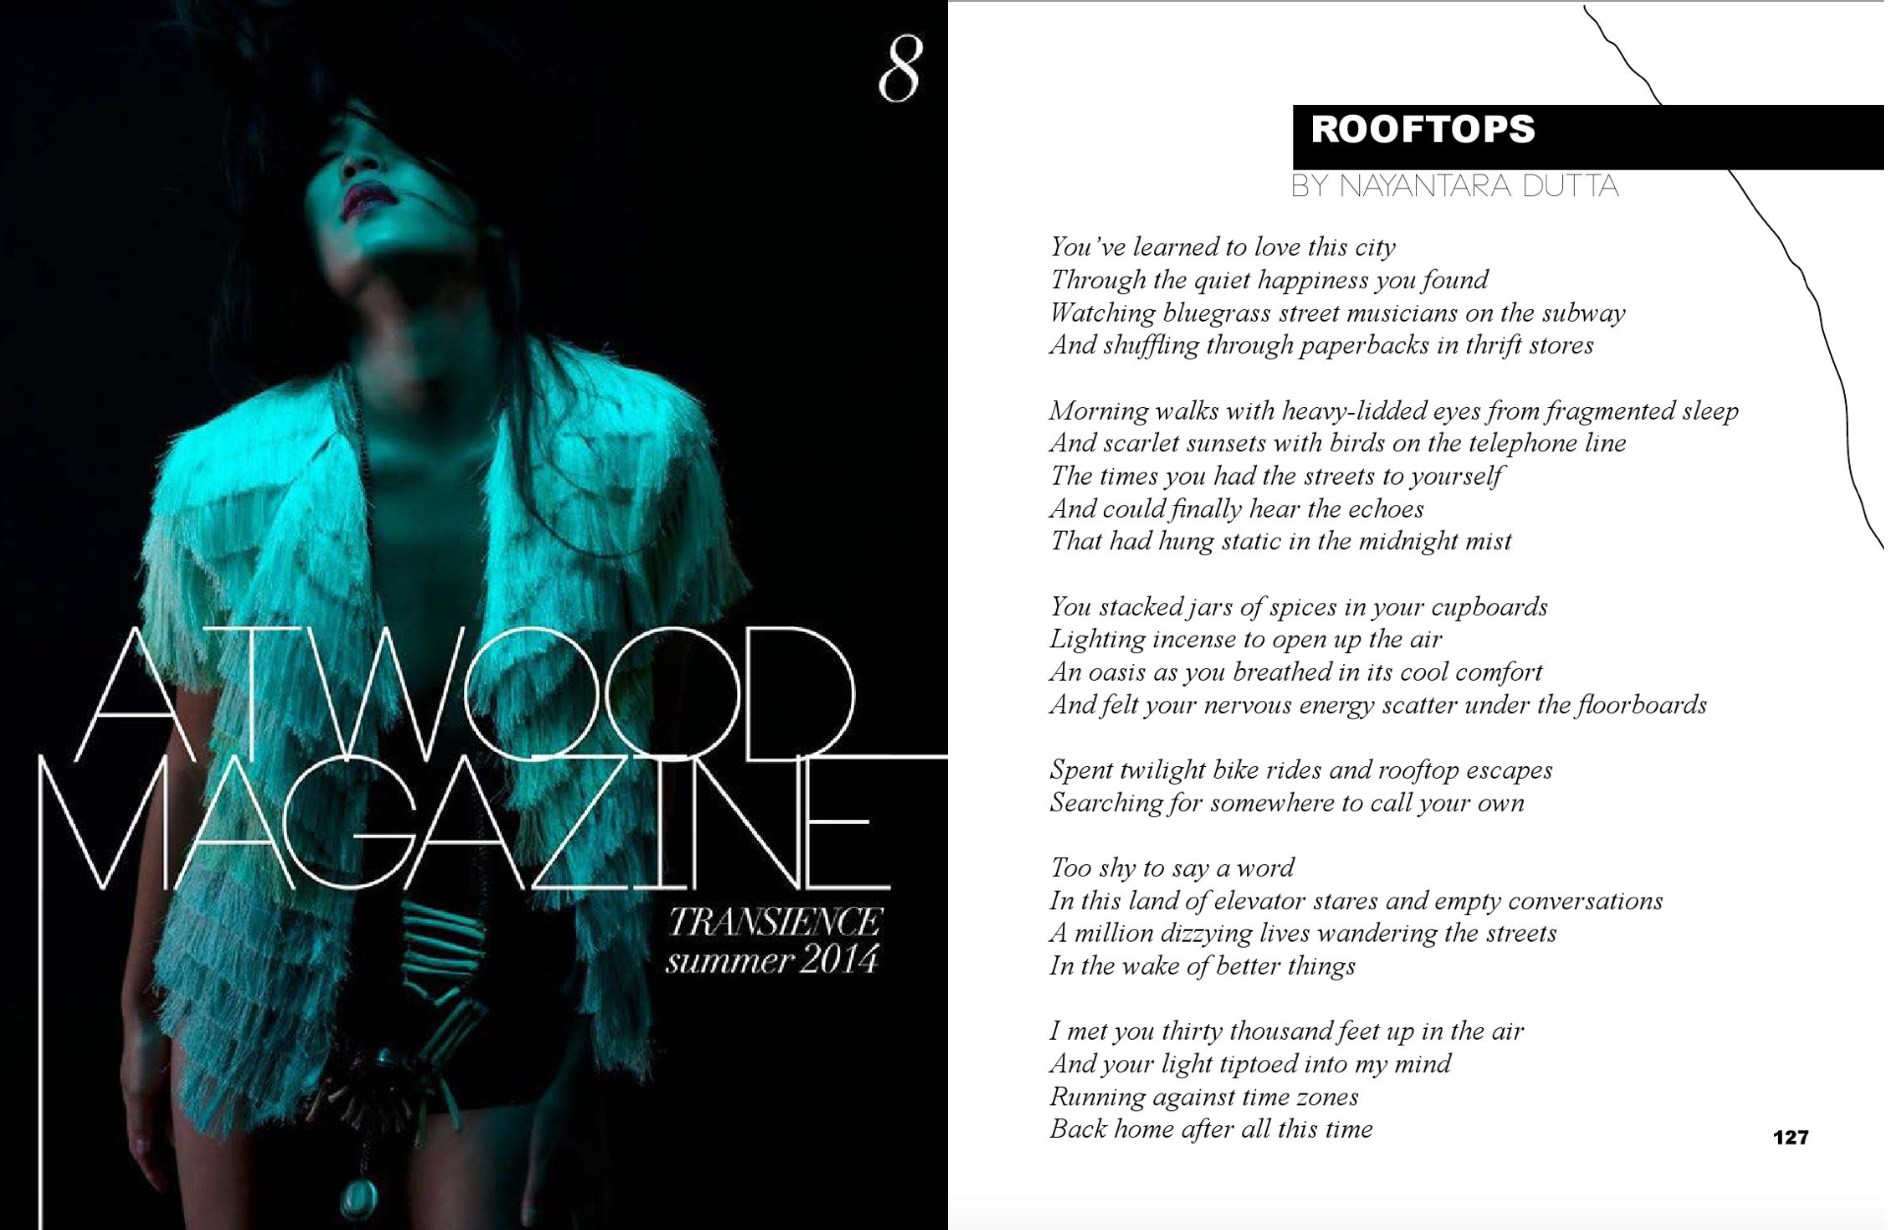 Rooftops - Atwood Magazine